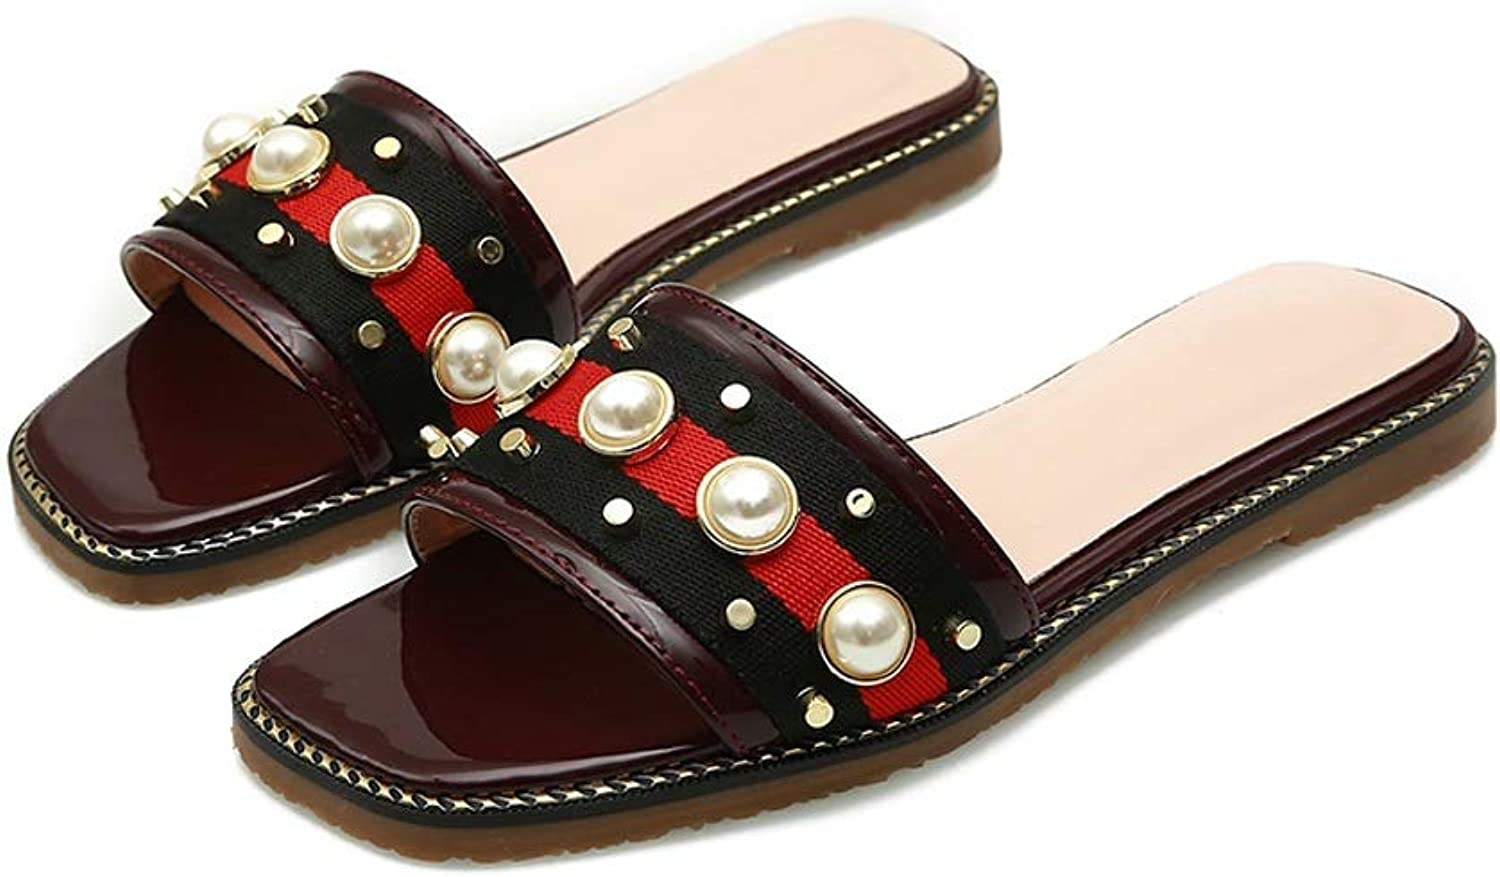 Ailj Women's Summer Sandals, Pearl Female Sandals Large Size Slippers Open Toe Beach shoes Red